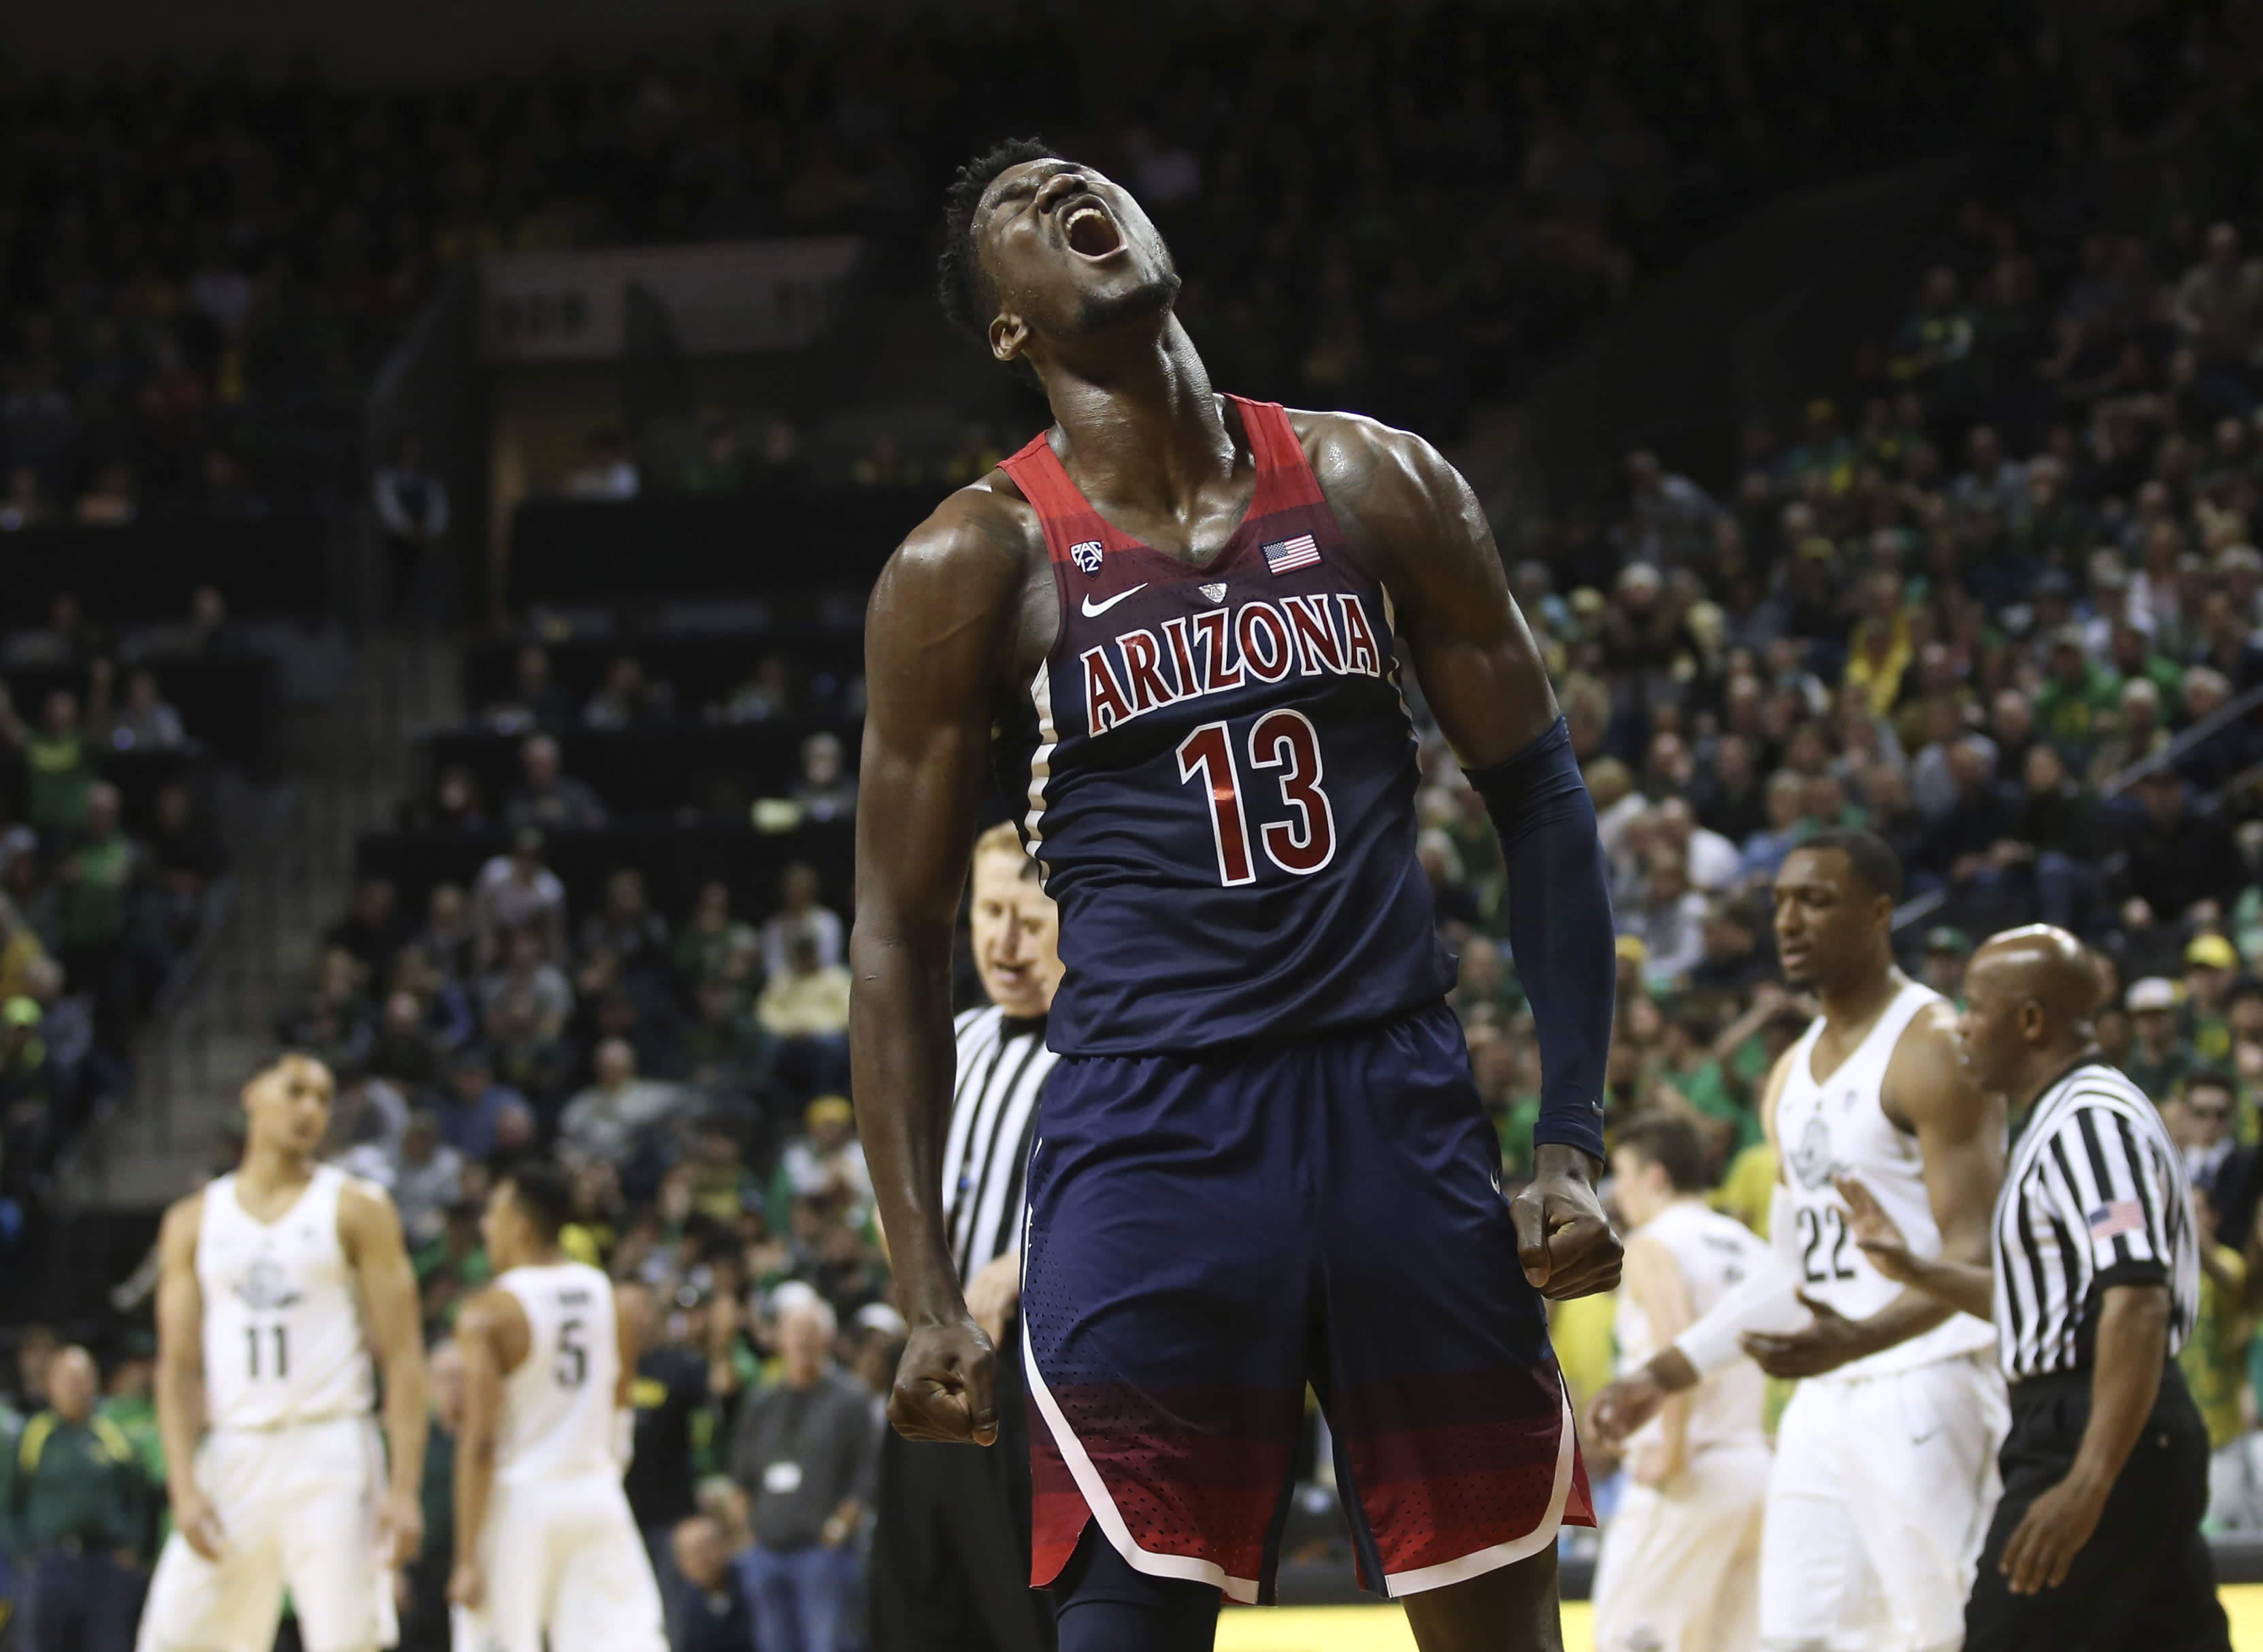 Arizona loses despite Deandre Ayton's dominant showing amid FBI scandal